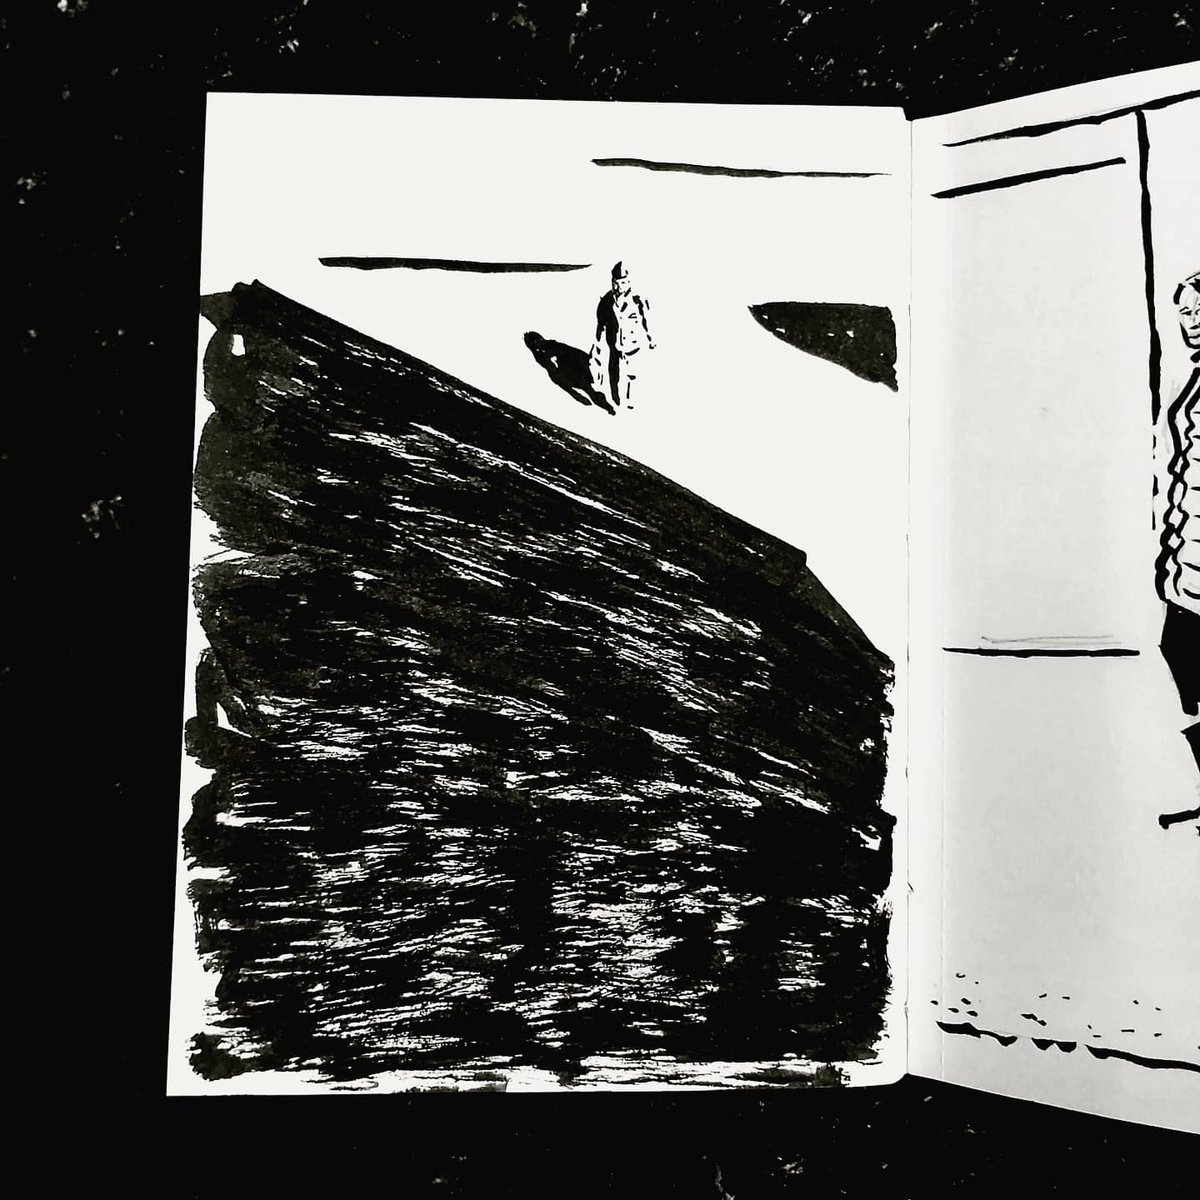 From the Inside 2 Day 114 (263 total) #isolation study Kitchen window Passerby No 154 #isolationlife #stayathome #lockdown #lockdown2uk #sketchbook #sketch #drawing #draw #doodle #ink #lineart #lifedrawing #figuredrawing #walk #artoftheday #art #artwork #artist #illustration